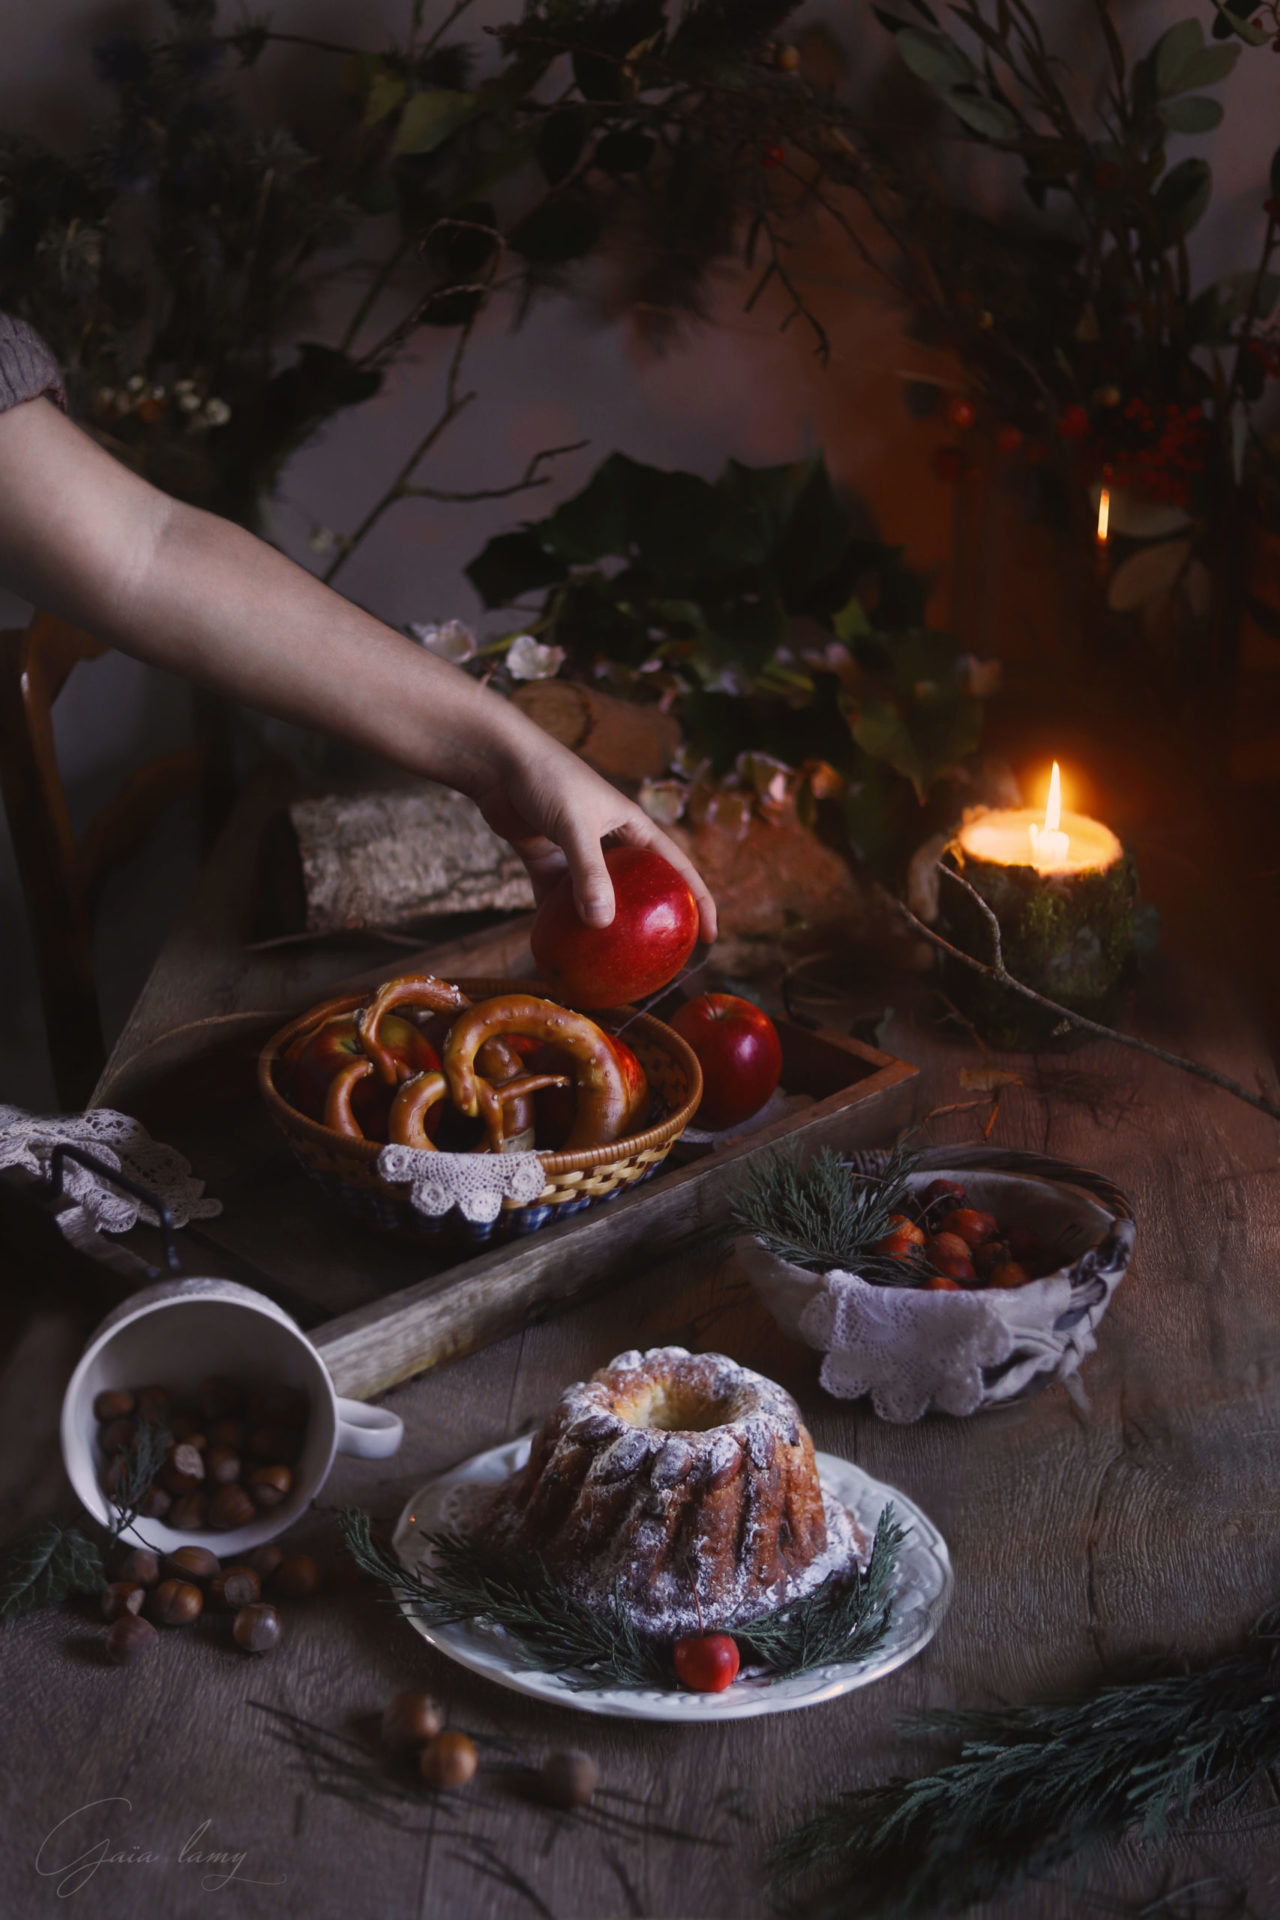 Les Contes Culinaires I – Blanche Neige